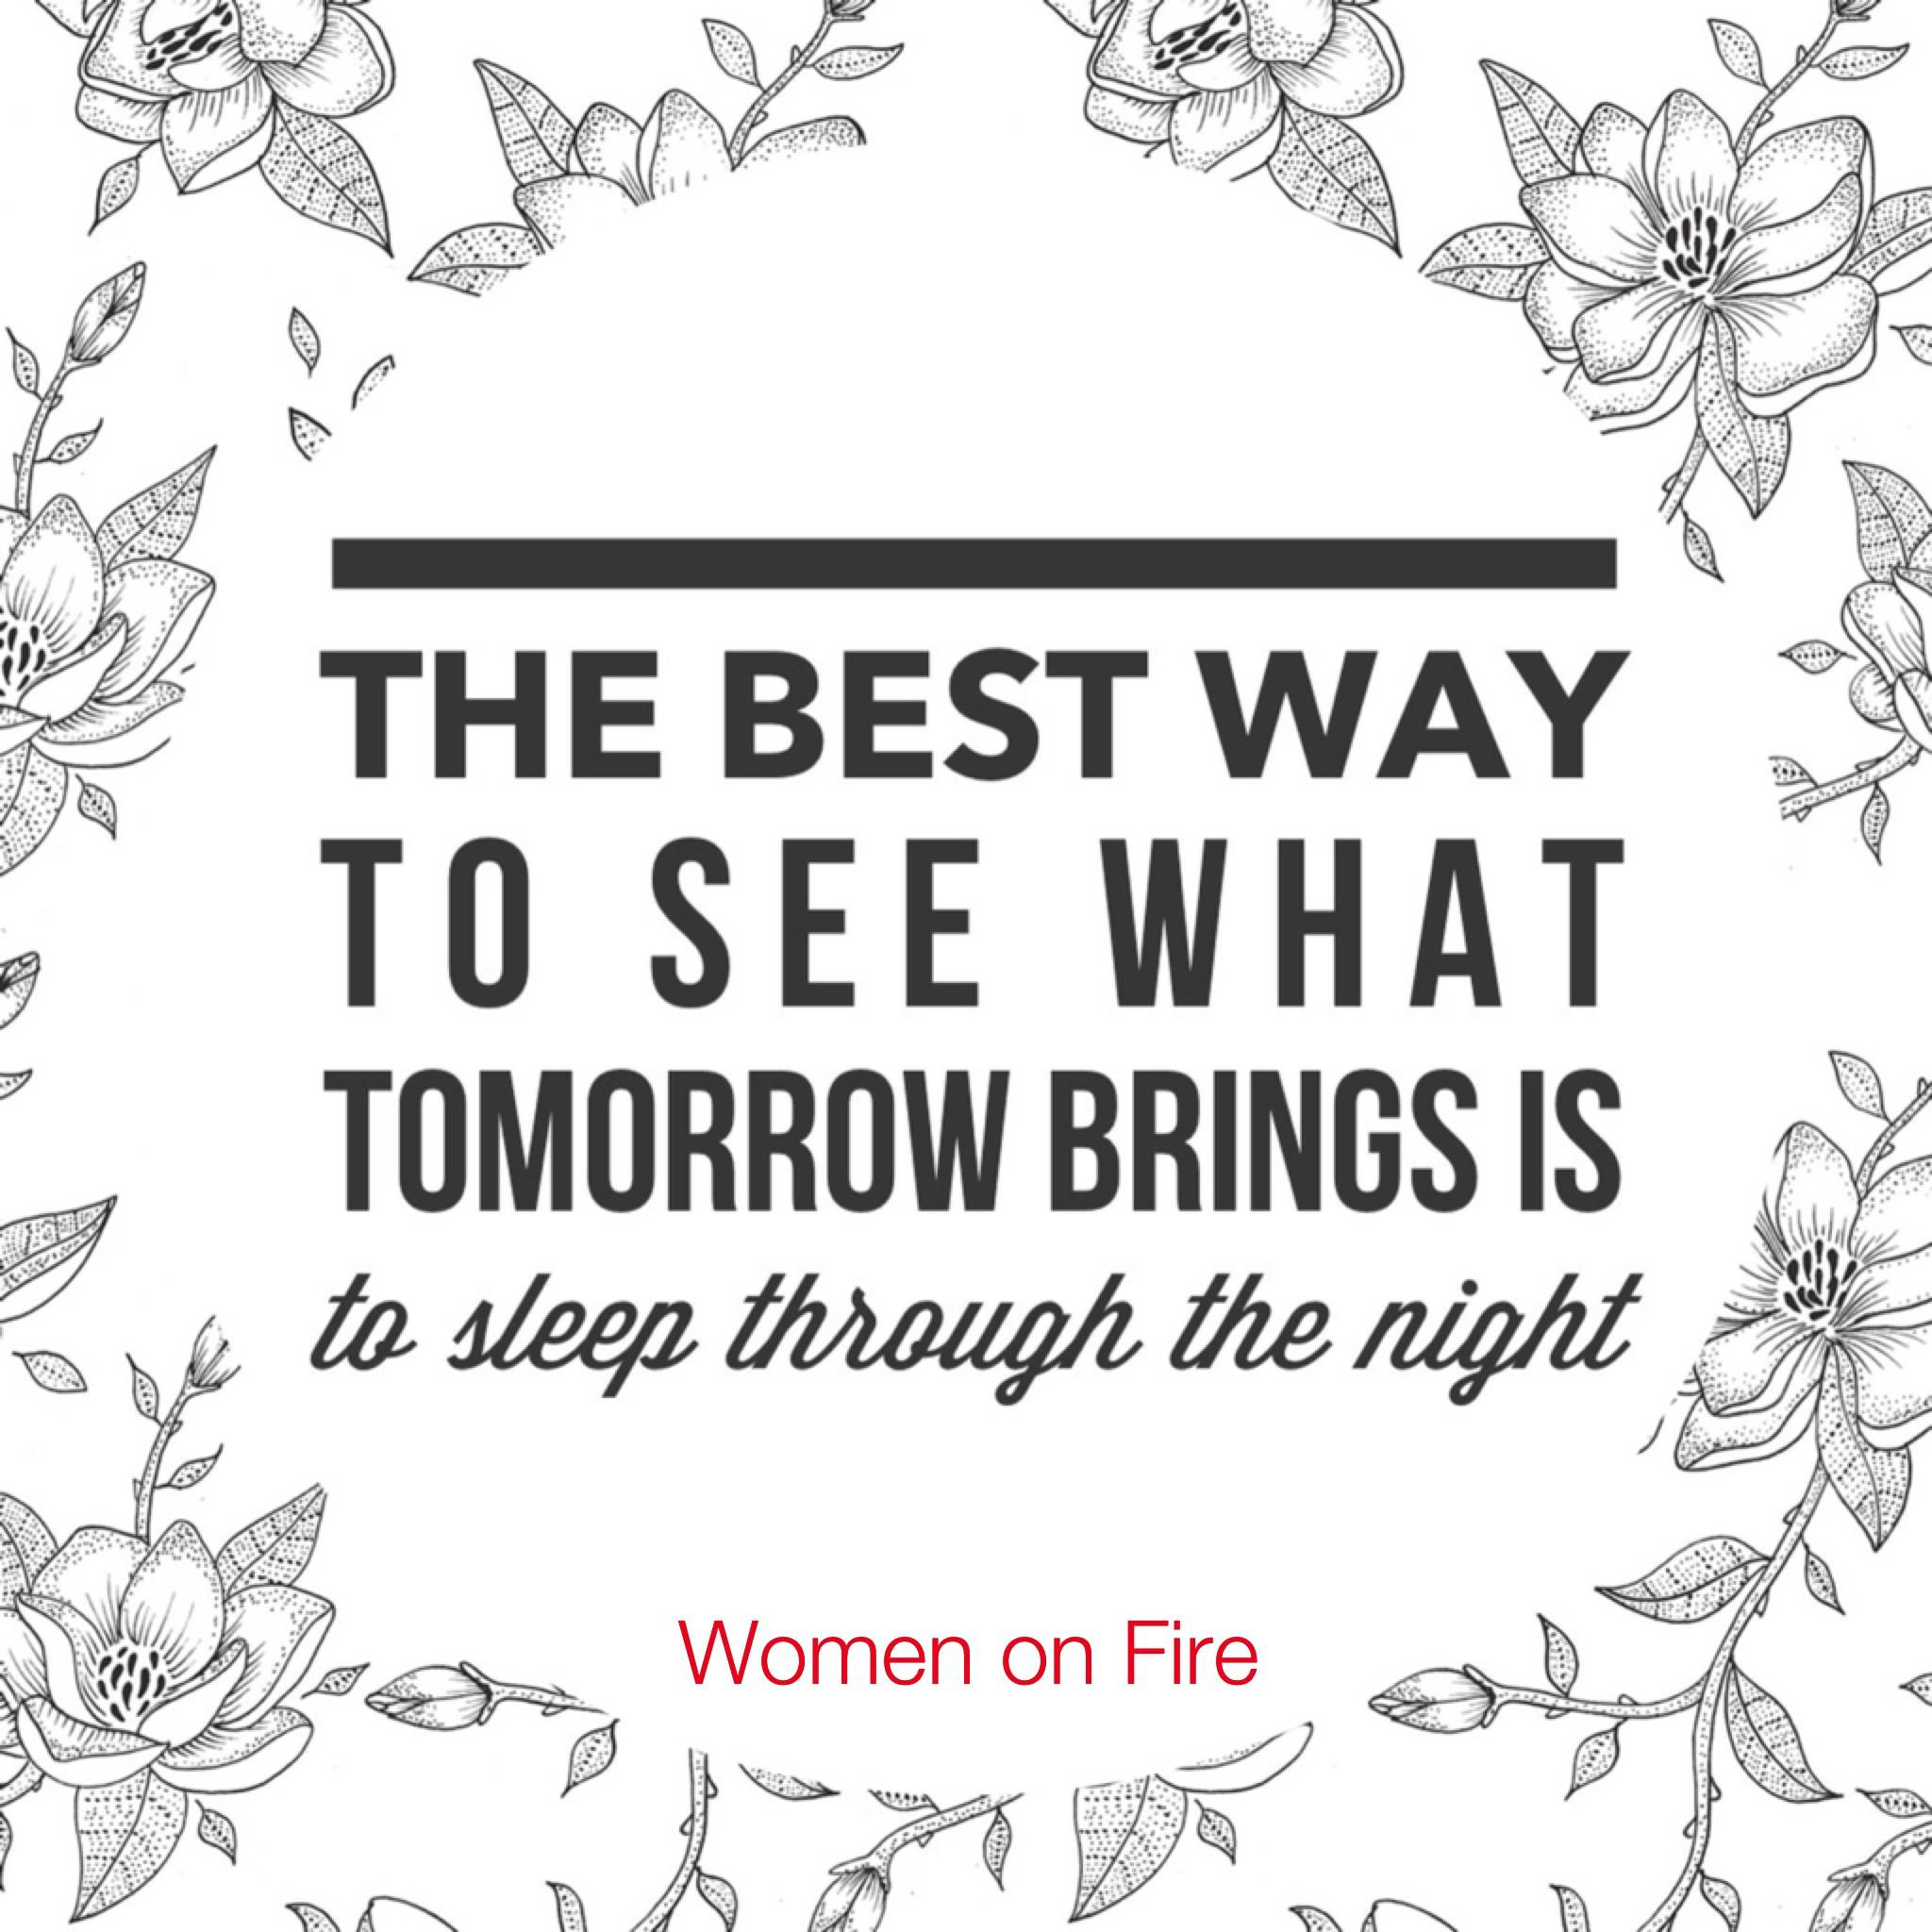 The best way to see what tomorrow brings is to sleep through the night. Need help sleeping? Women on Fire has you covered in the latest spark. www.womenonfire.com